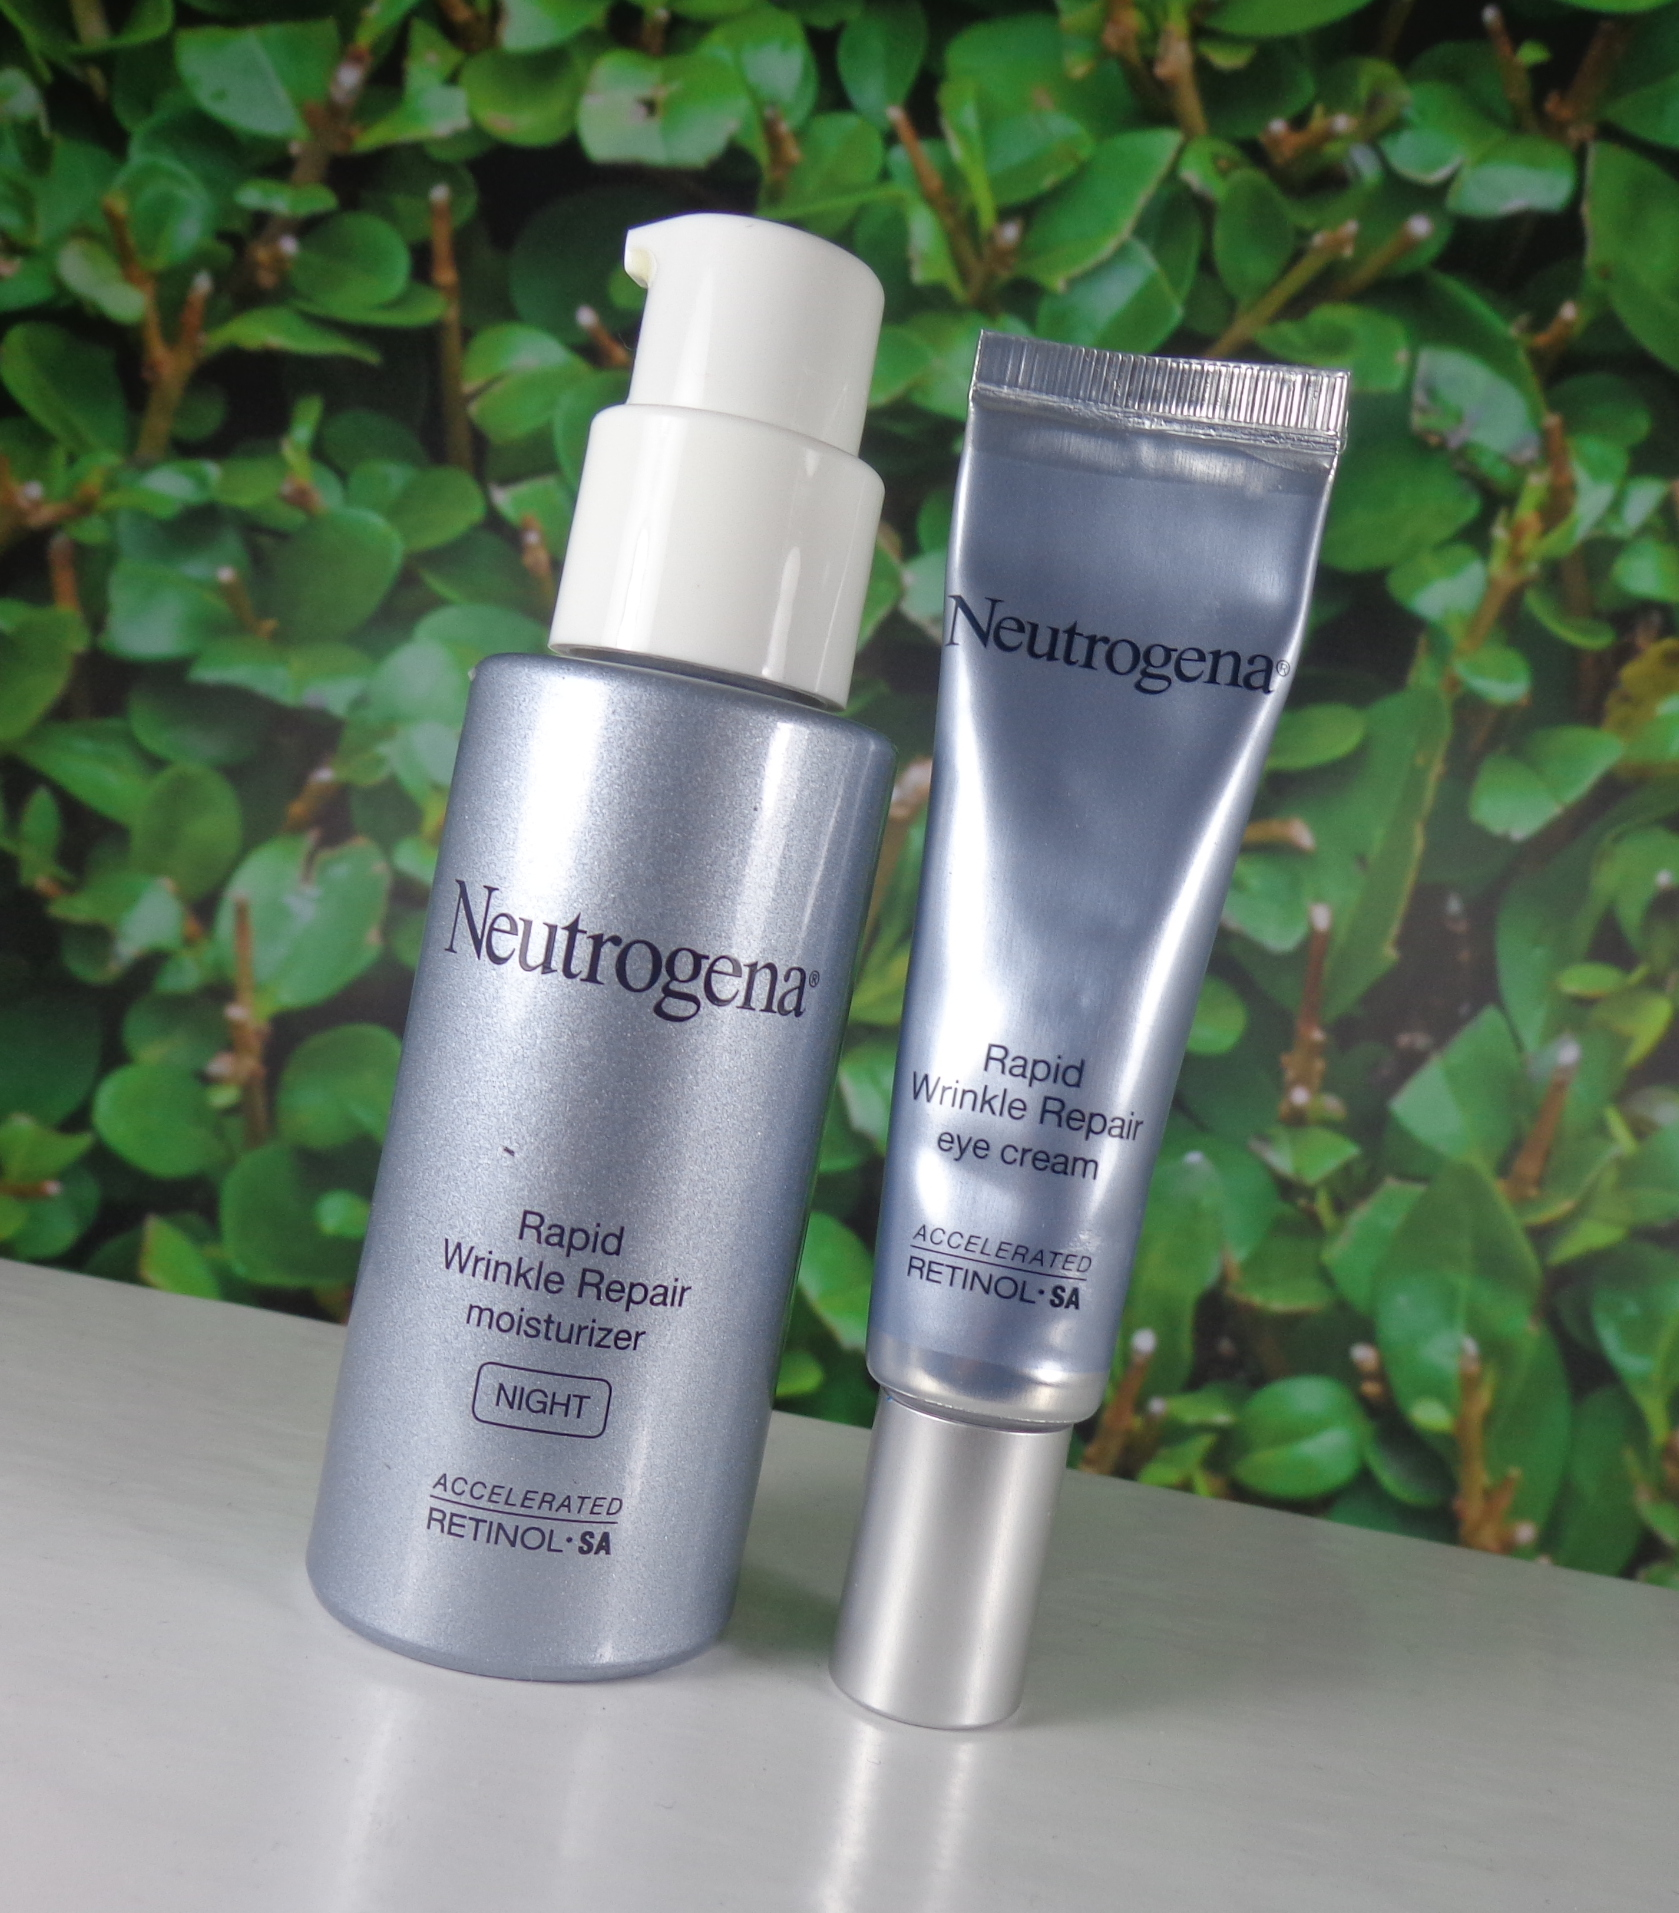 Neutrogena Rapid Repair Moisturizer Eye Cream